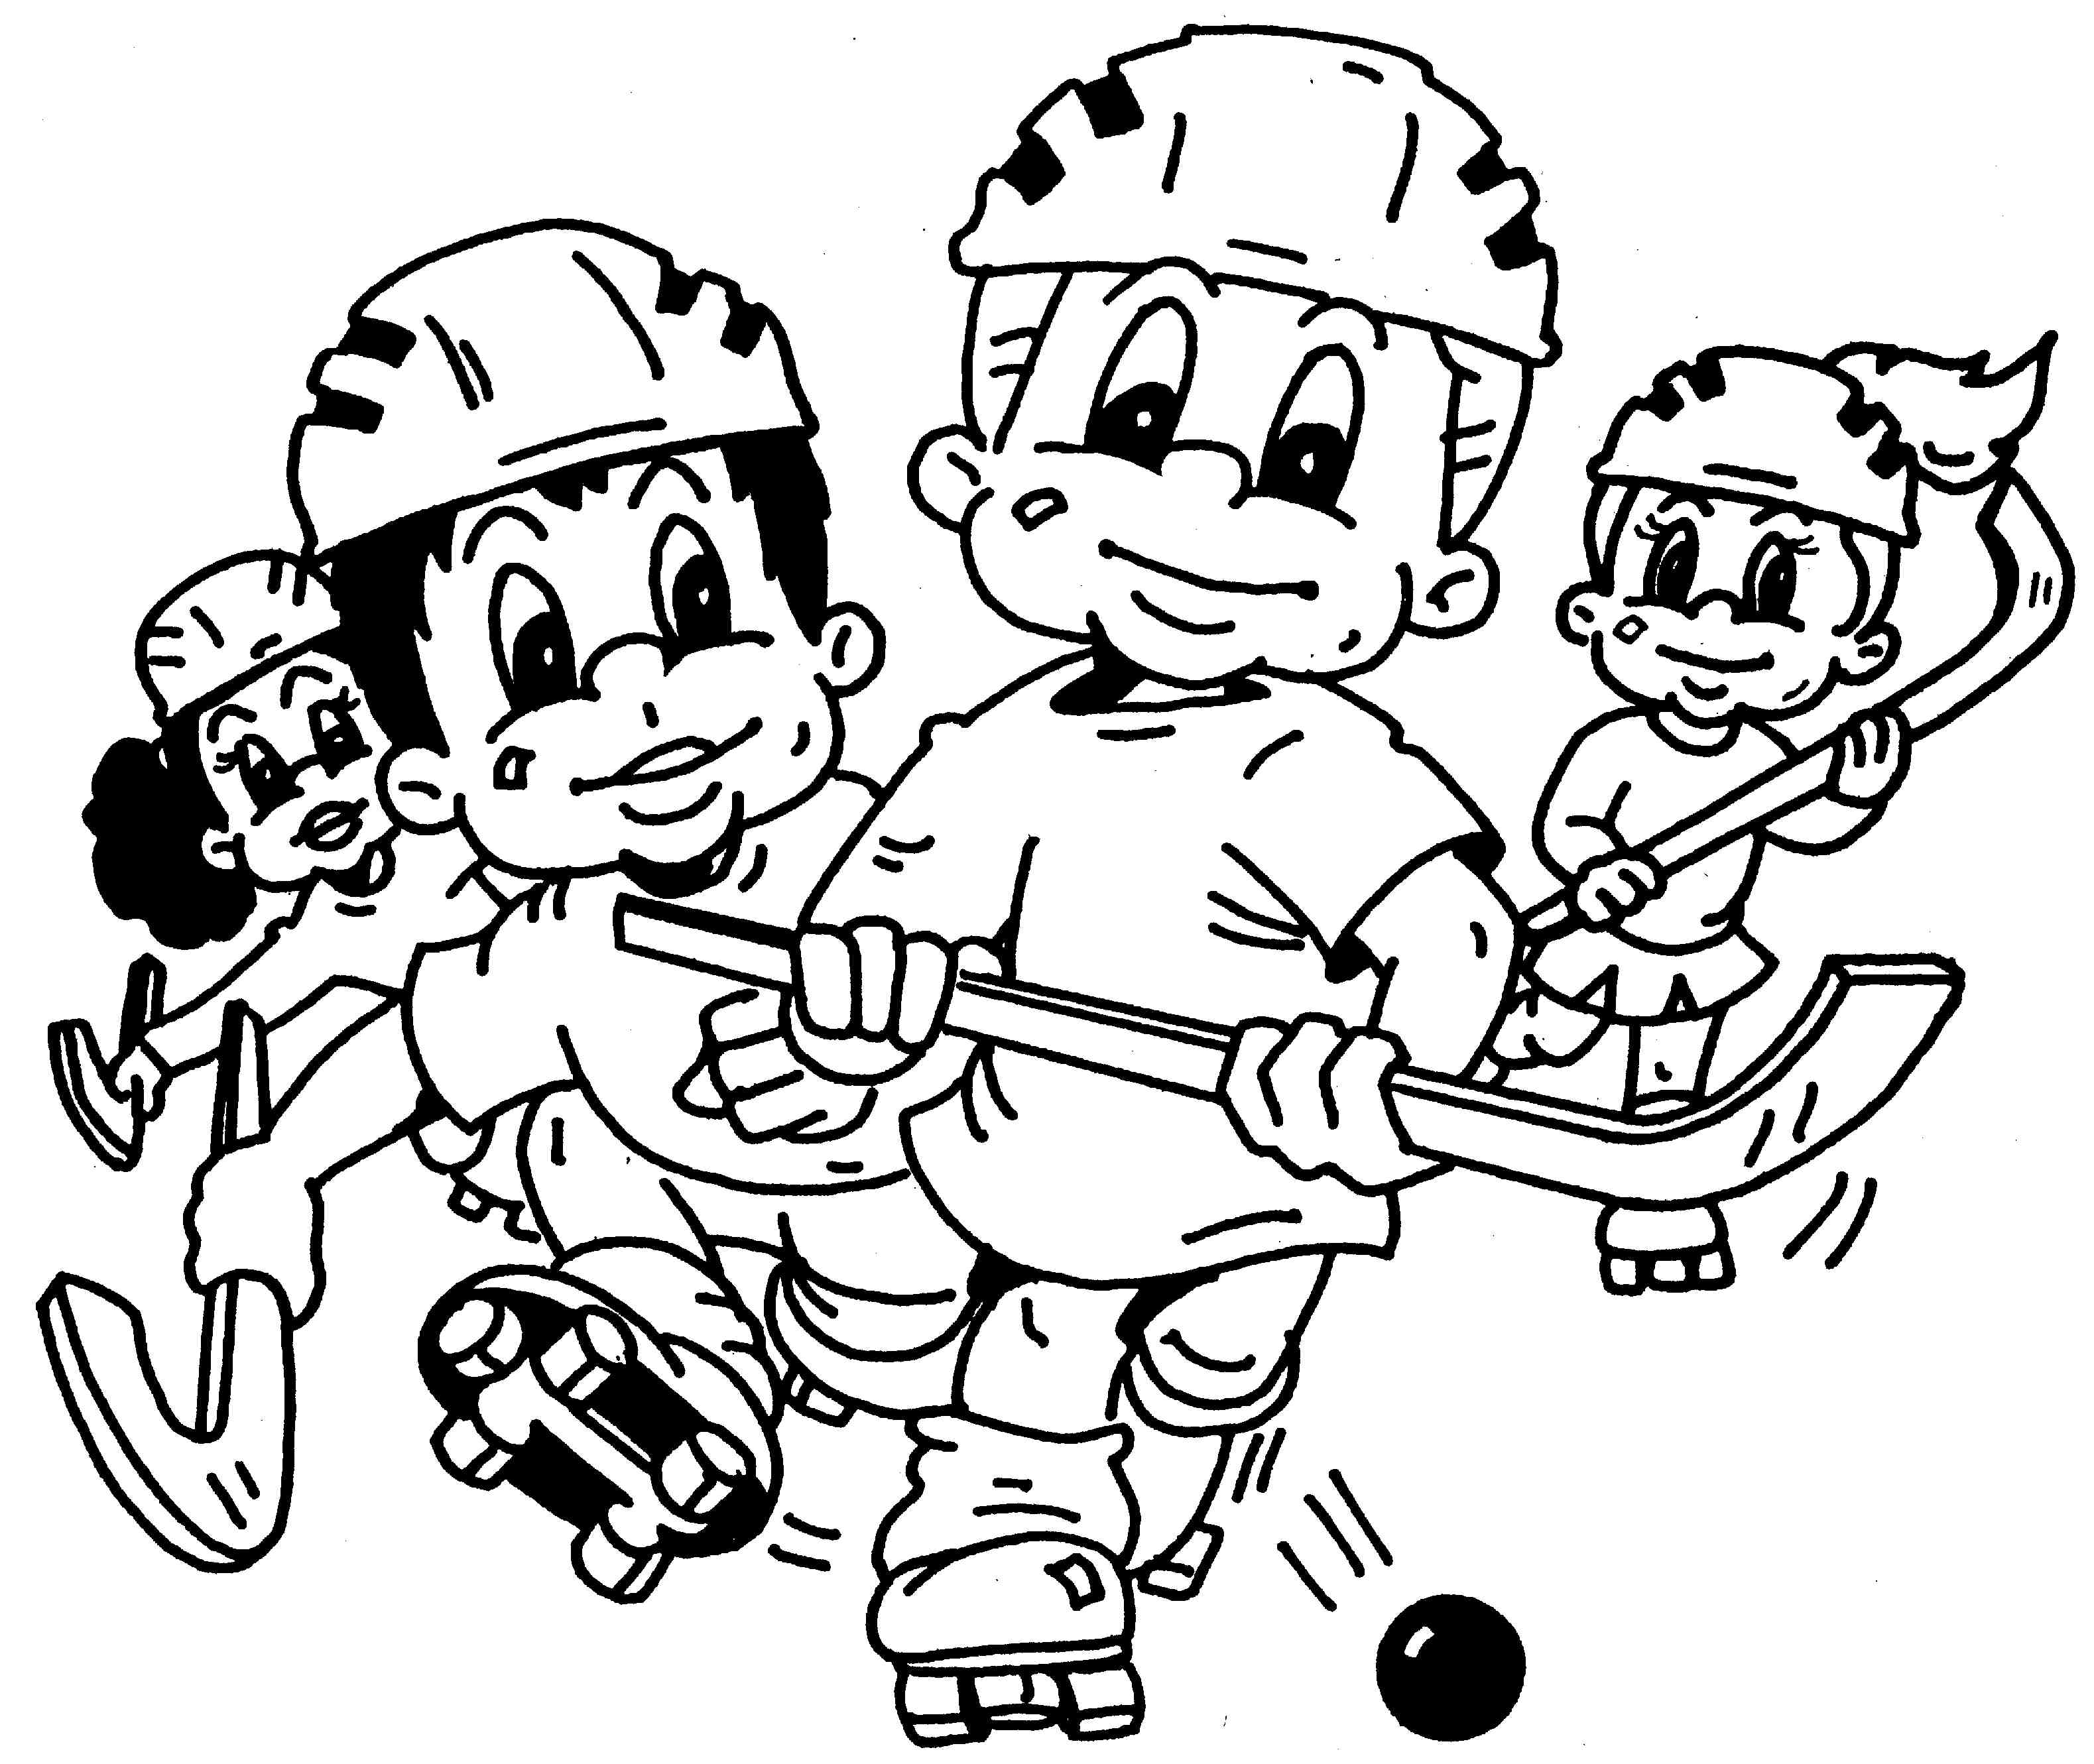 boston bruins printable coloring pages | Bruins Drawing at GetDrawings.com | Free for personal use ...